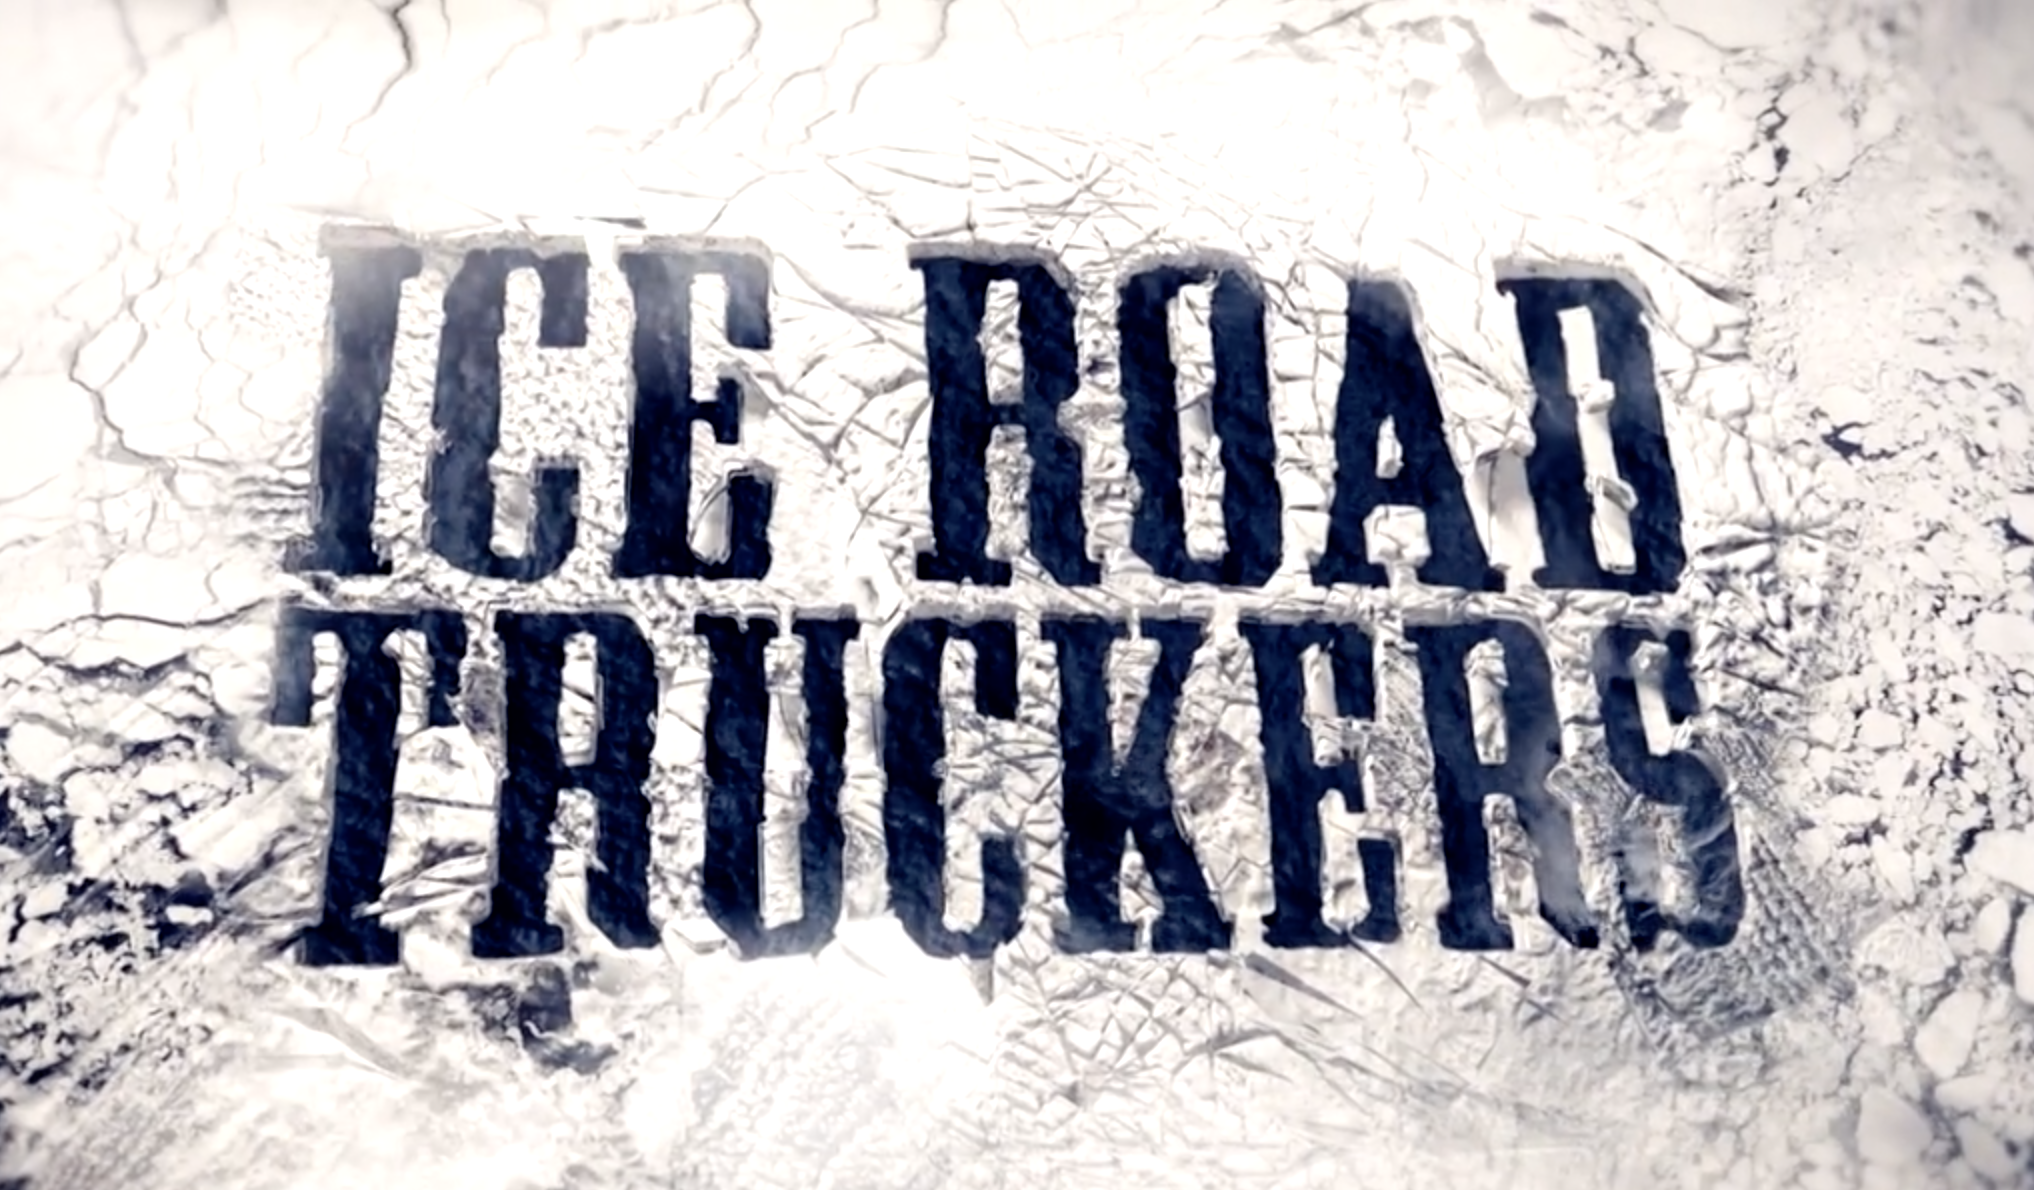 ICE ROAD TRUCKERS - A+E Networks